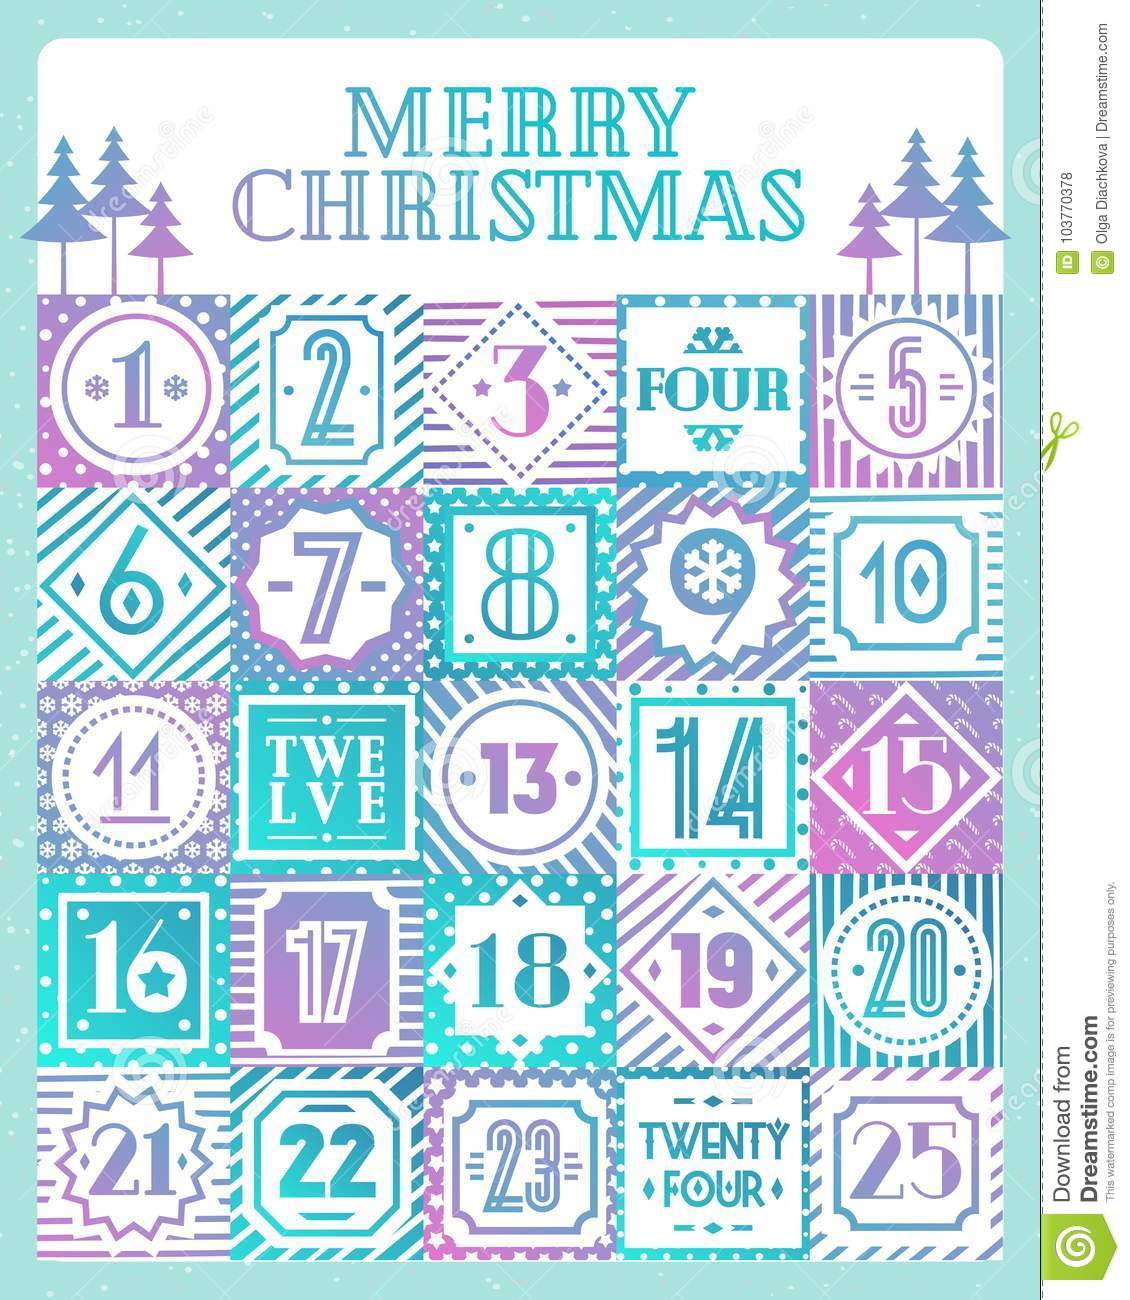 graphic about Printable Christmas Countdown Calendar named Xmas Countdown Calendar Printable Tags Coloration Design With